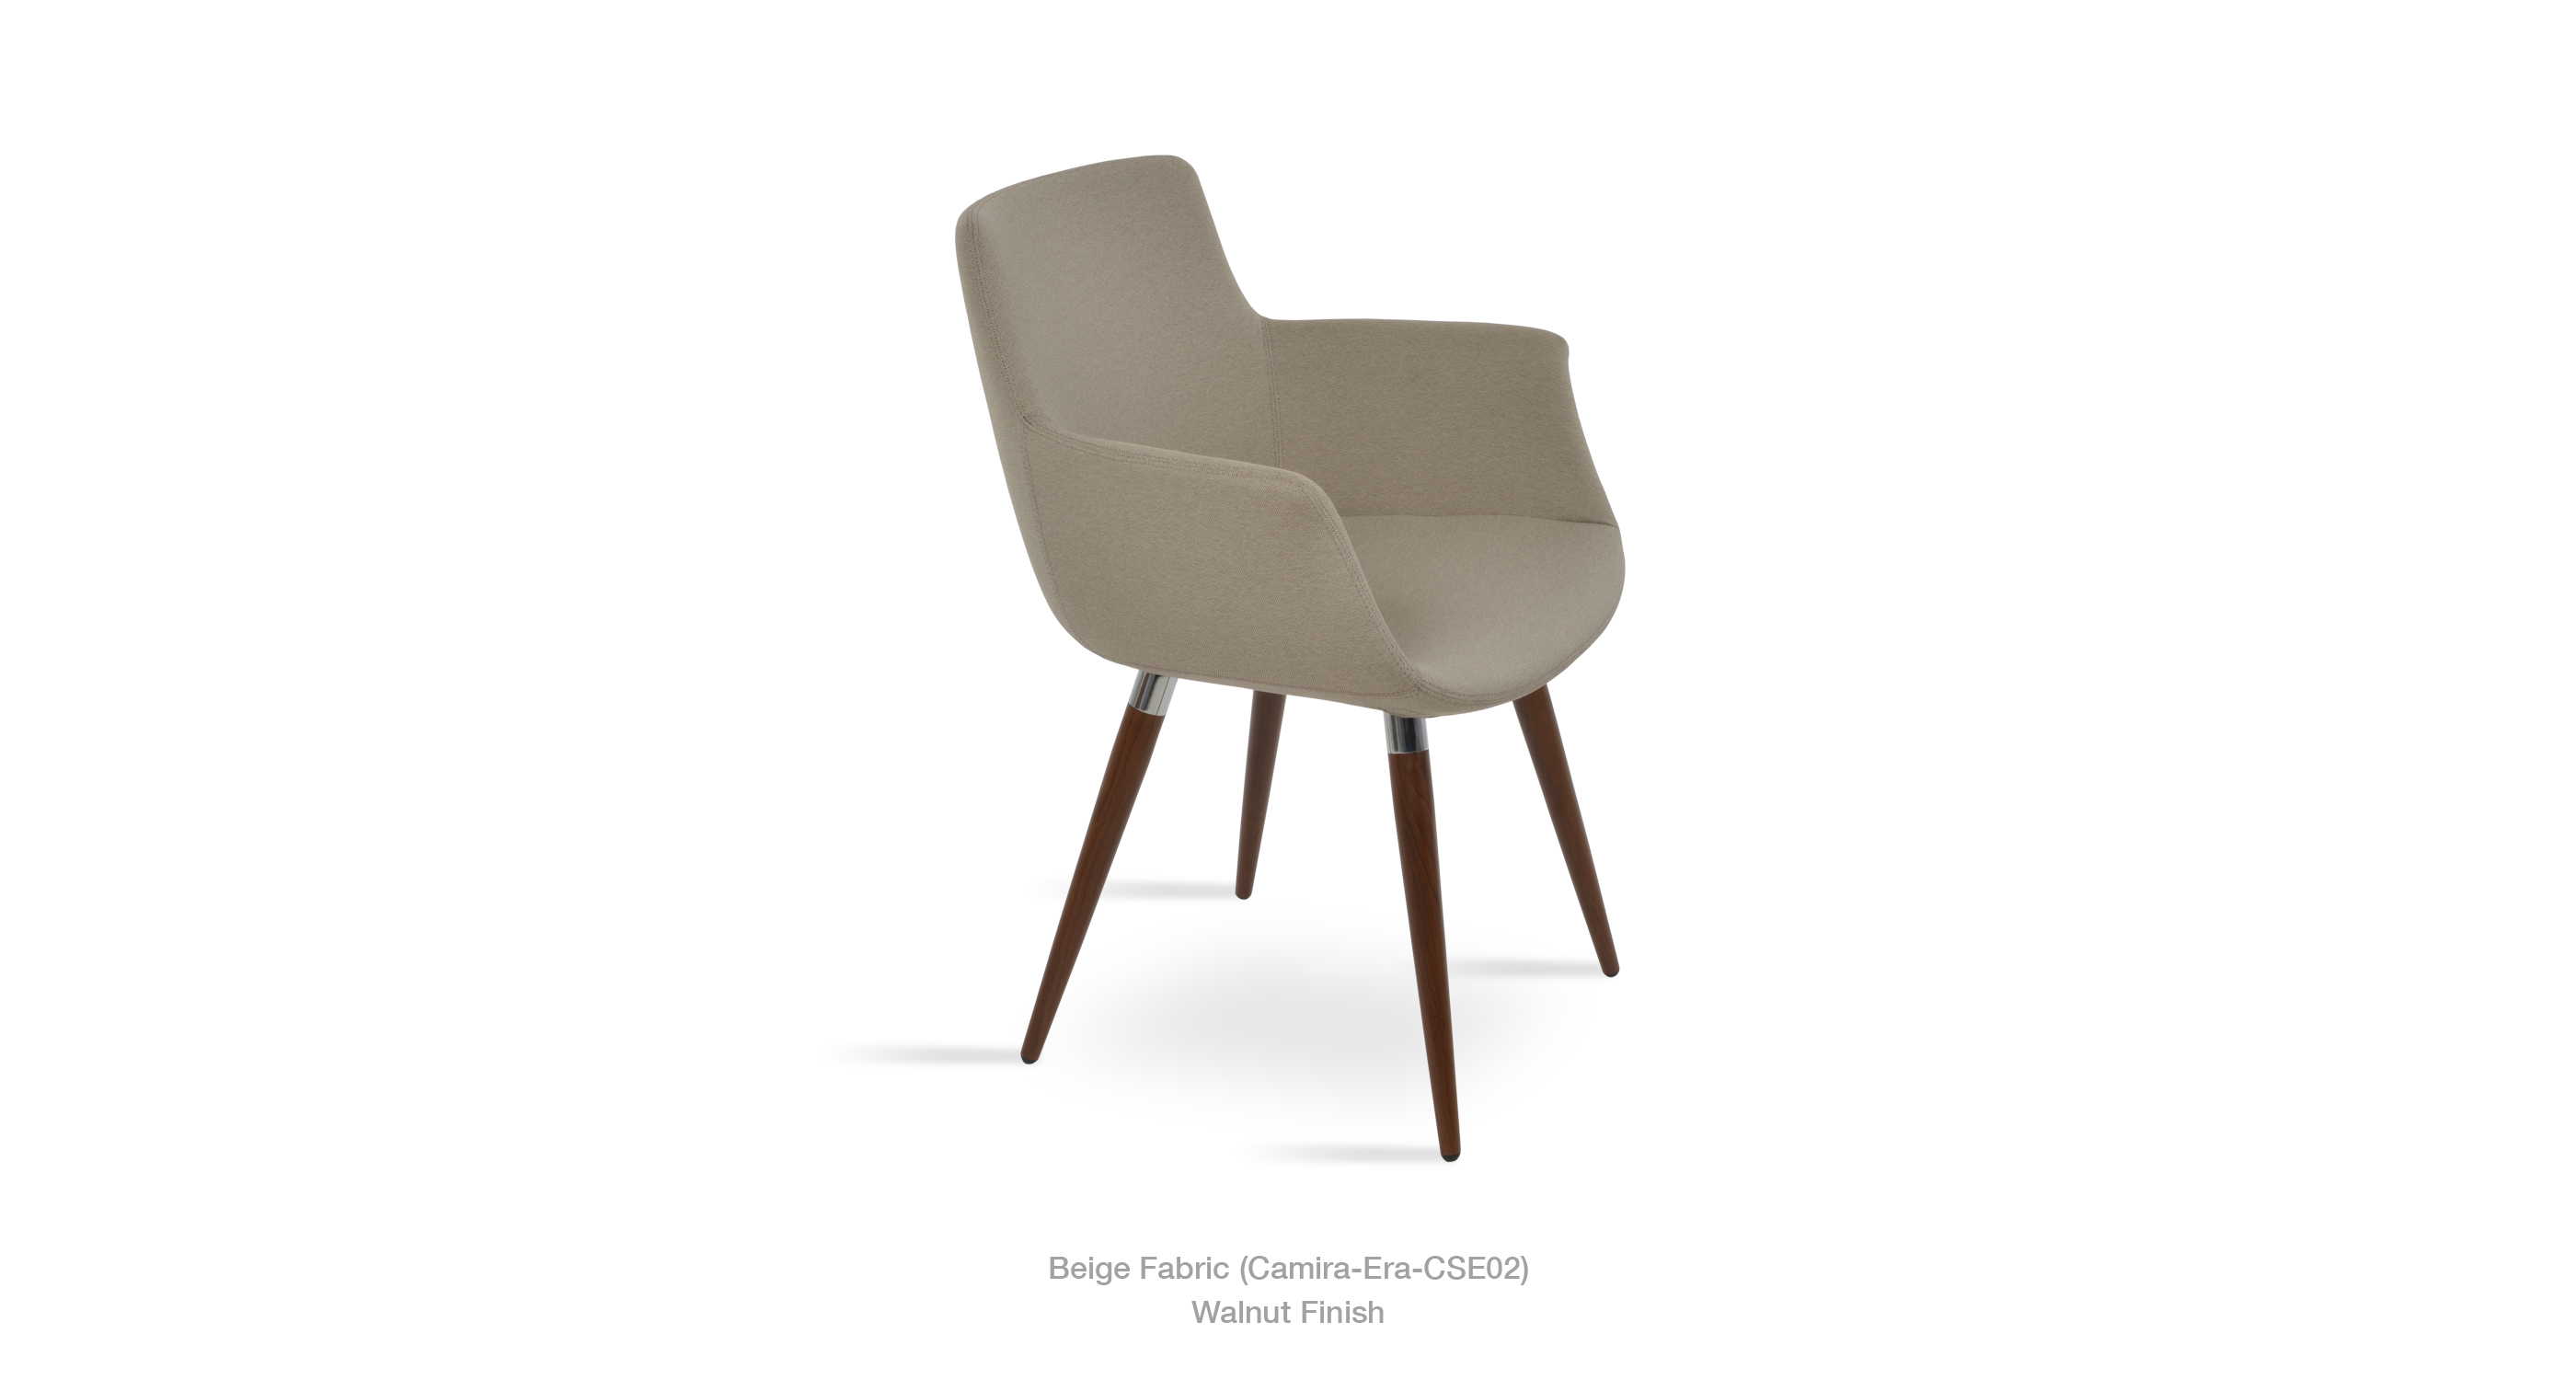 2020 01 20 Bottega Arm Ana Beige Camira Walnut